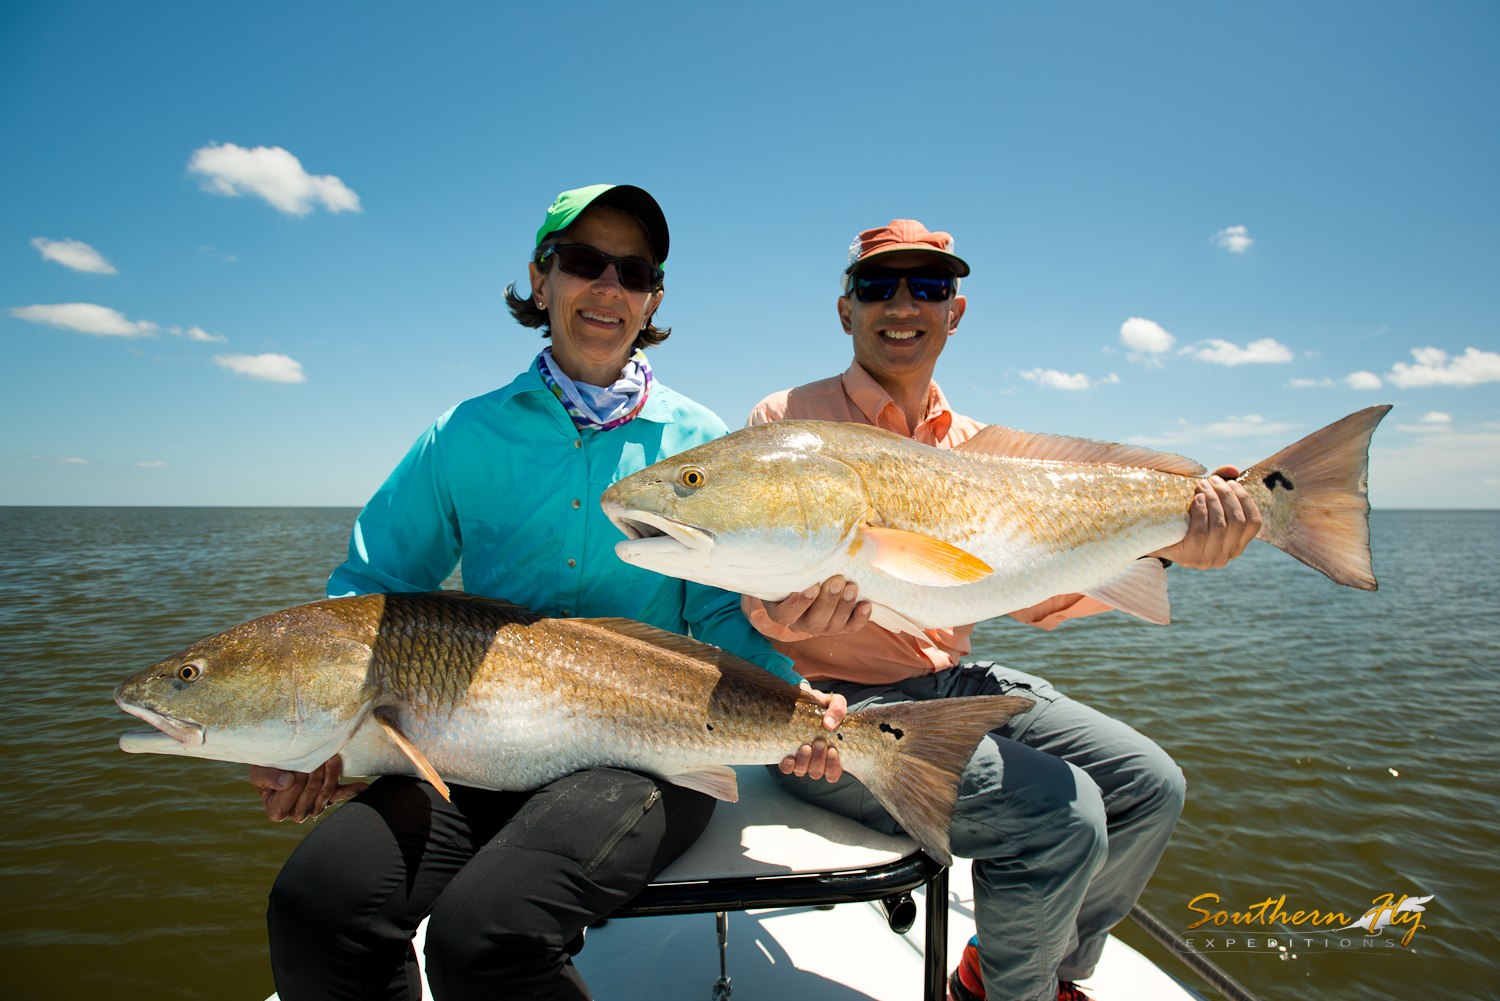 Couple Fly Fishing Trips New Orleans Southern Fly Expeditions